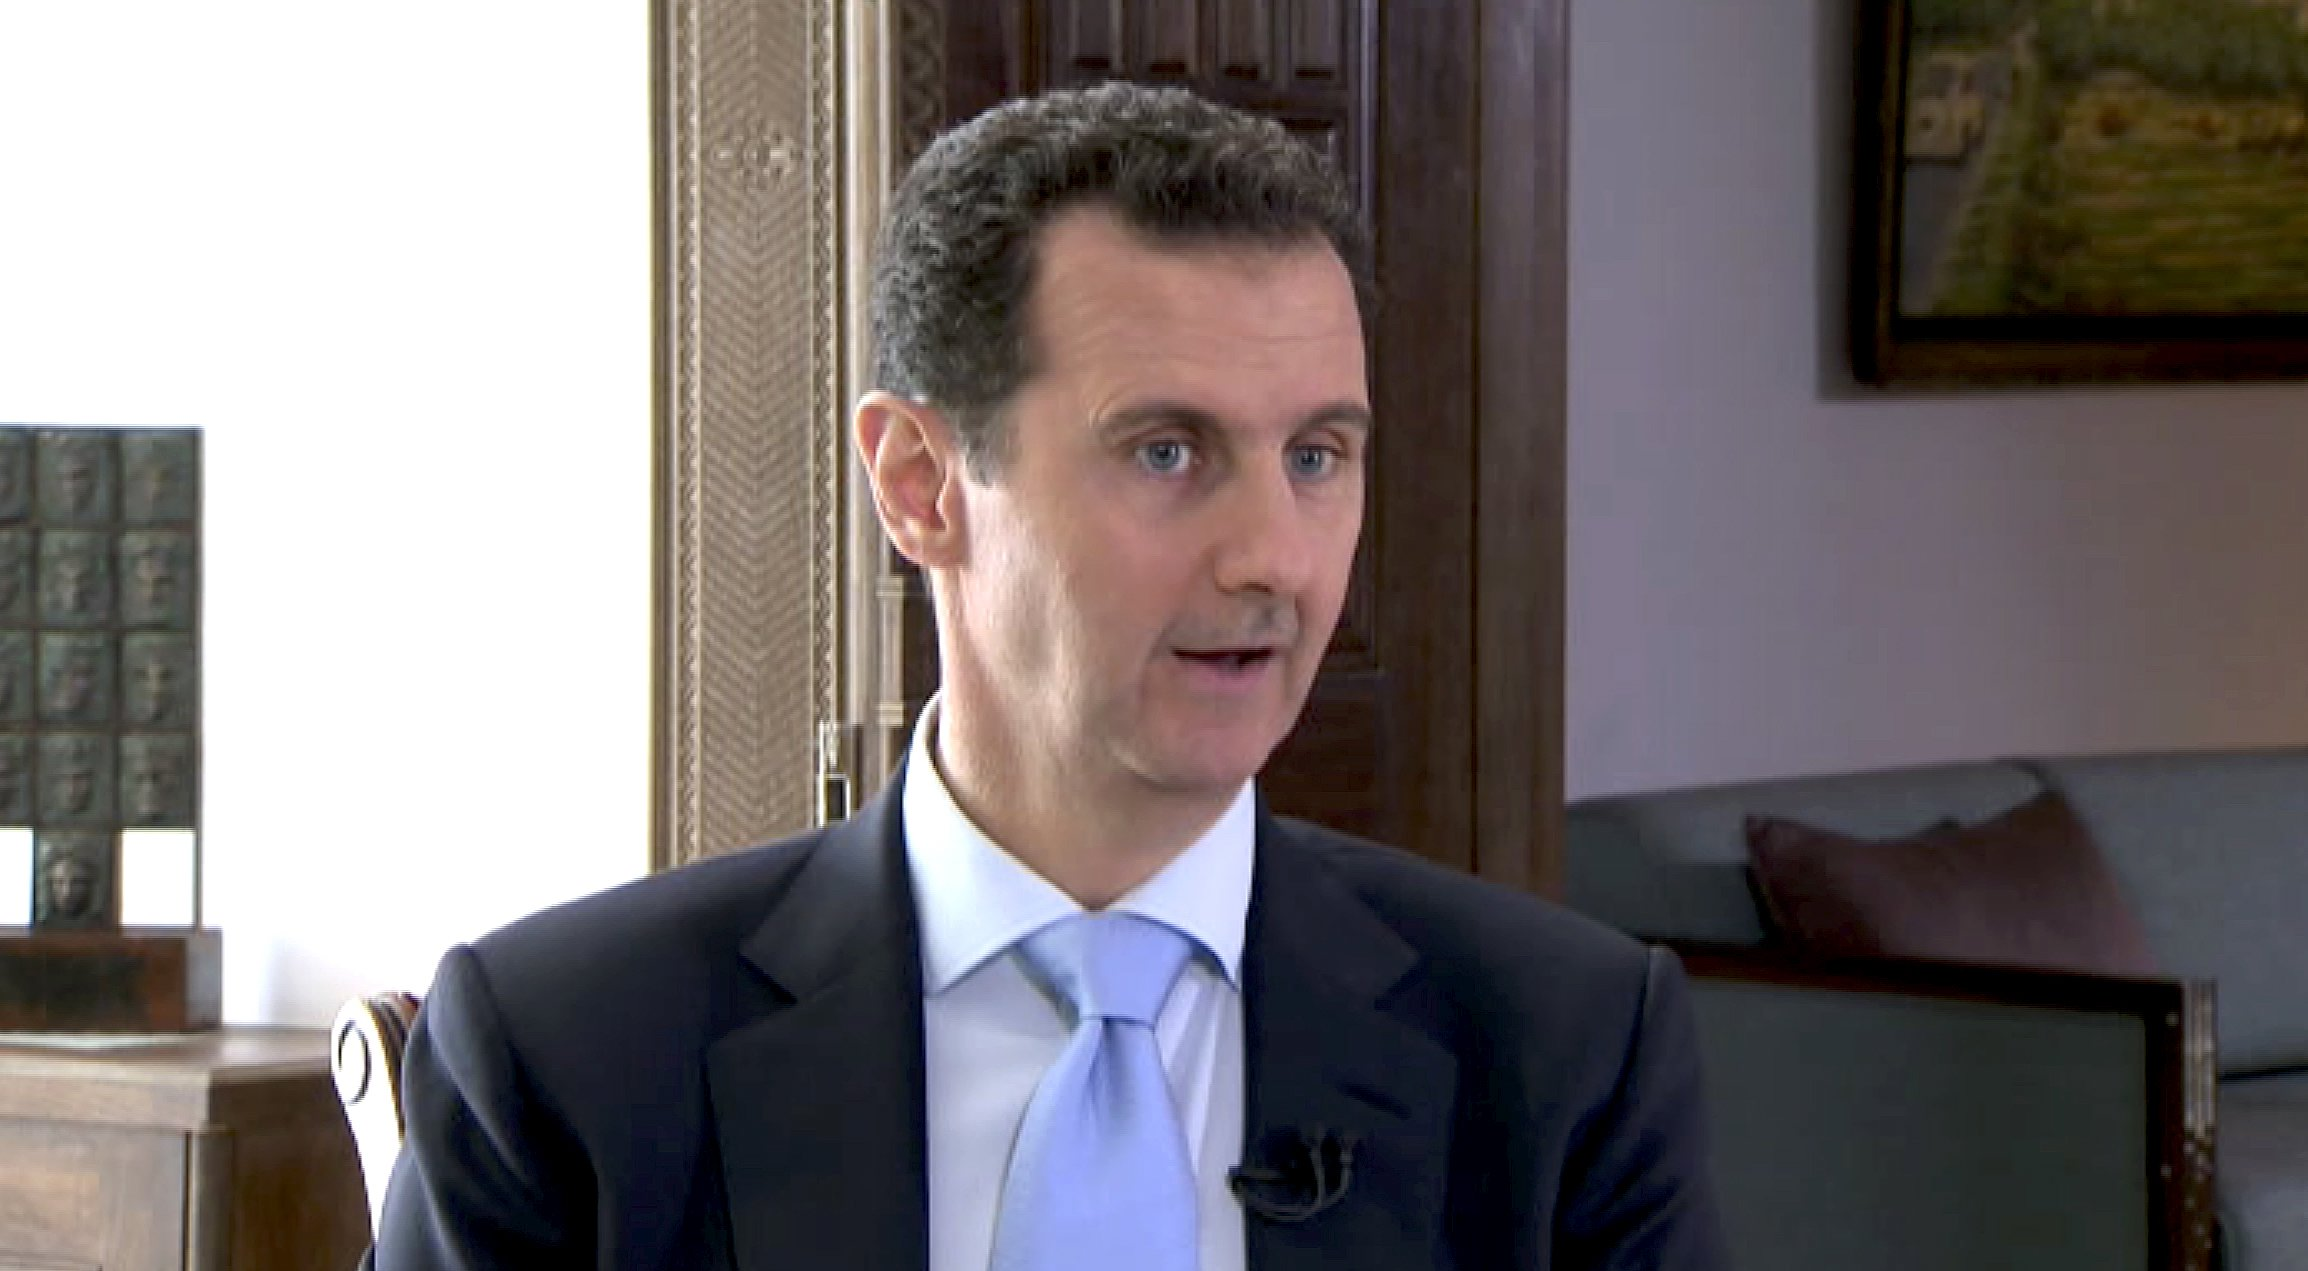 Syria's Assad says he will not negotiate with armed groups